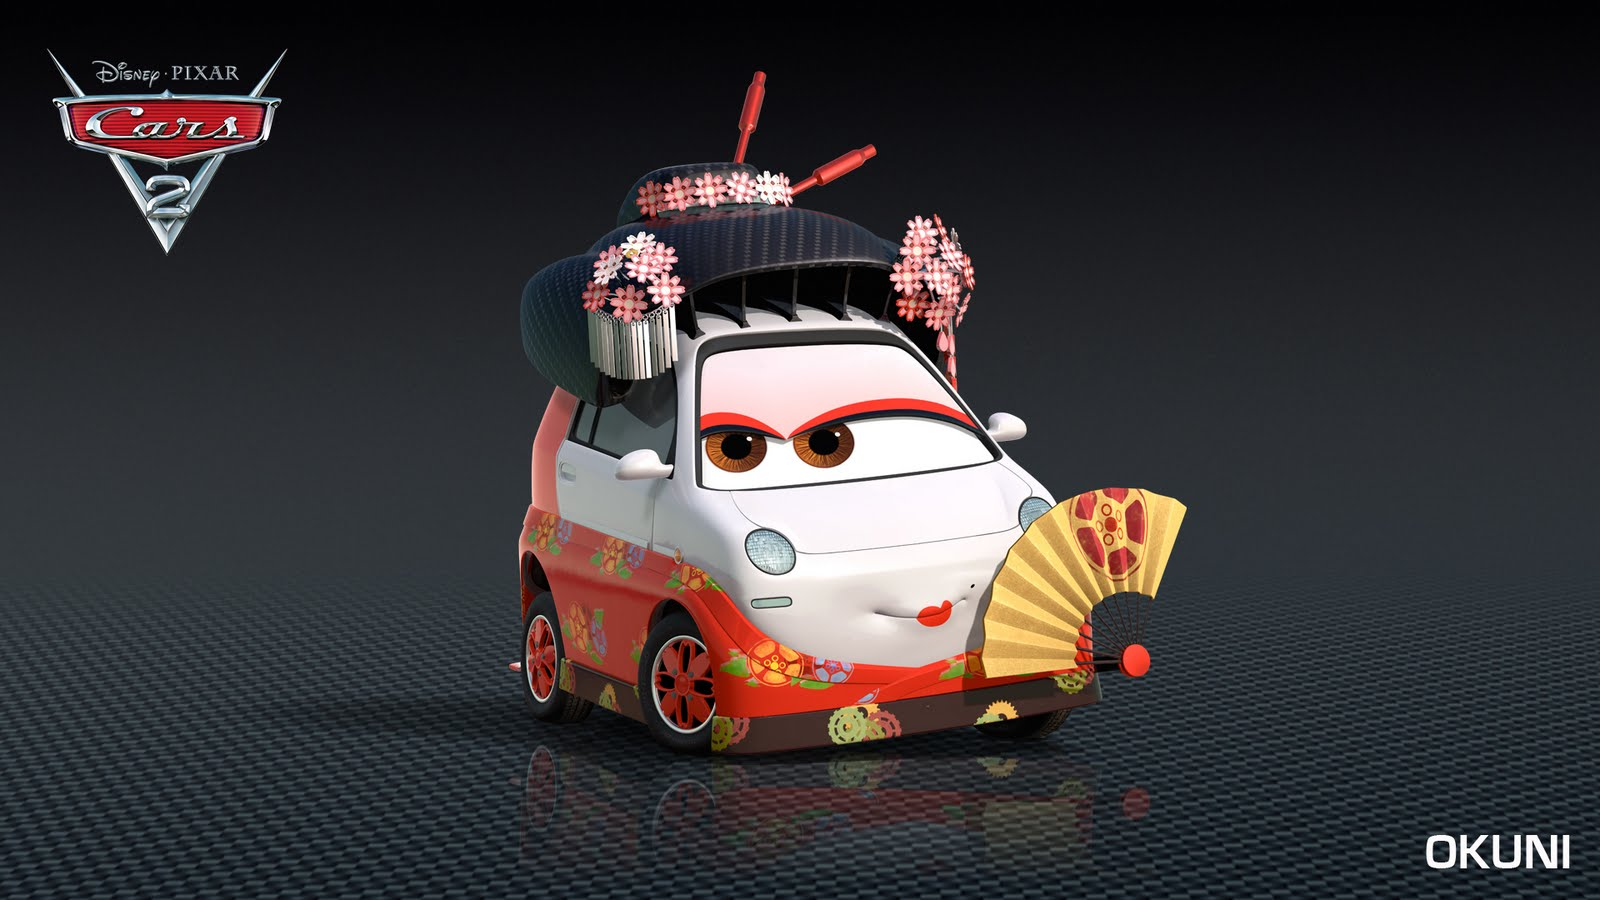 Okuni, a Japanese car in Cars 2 2011 animatedfilmreviews.blogspot.com